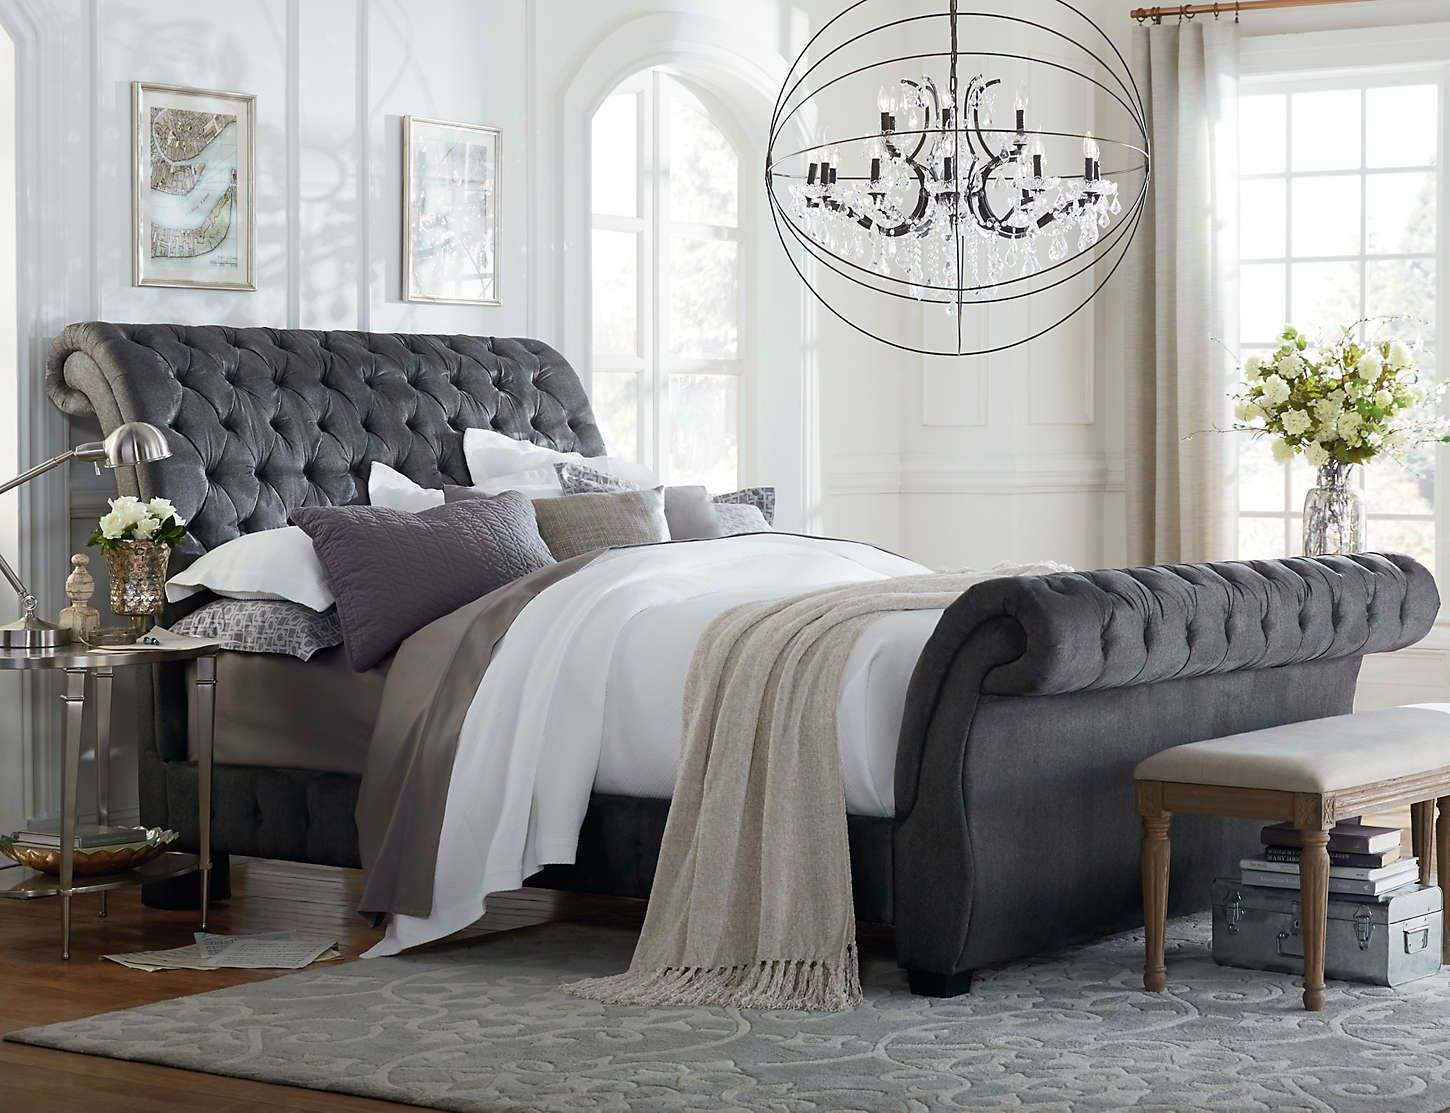 Bombay Gunmetal King Upholstered Bed Bedding Master